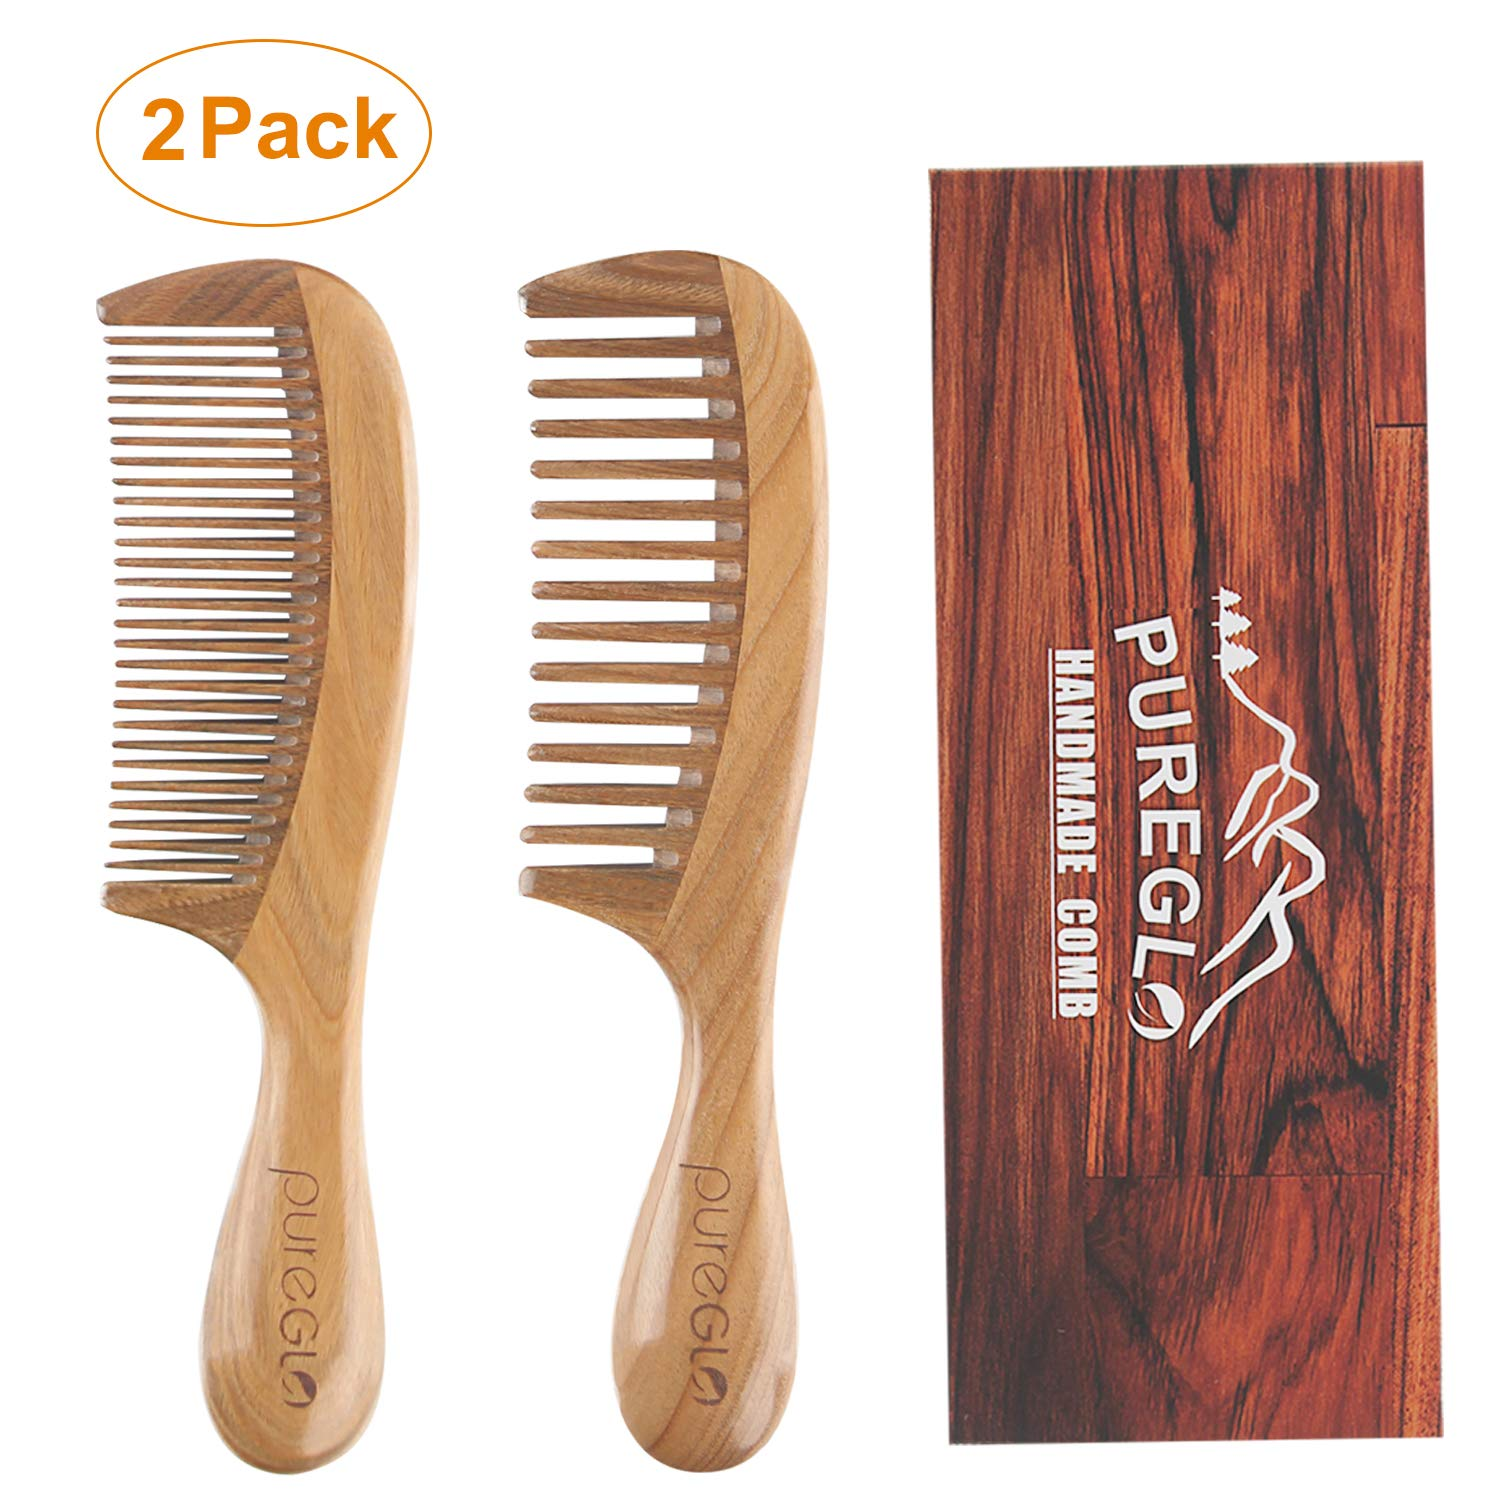 Handmade Wooden Comb Set [Gift Box] - pureGLO Natural Green Sandalwood Anti-Static Fine & Wide Tooth Hair Combs for Men Women and Kids by pureGLO